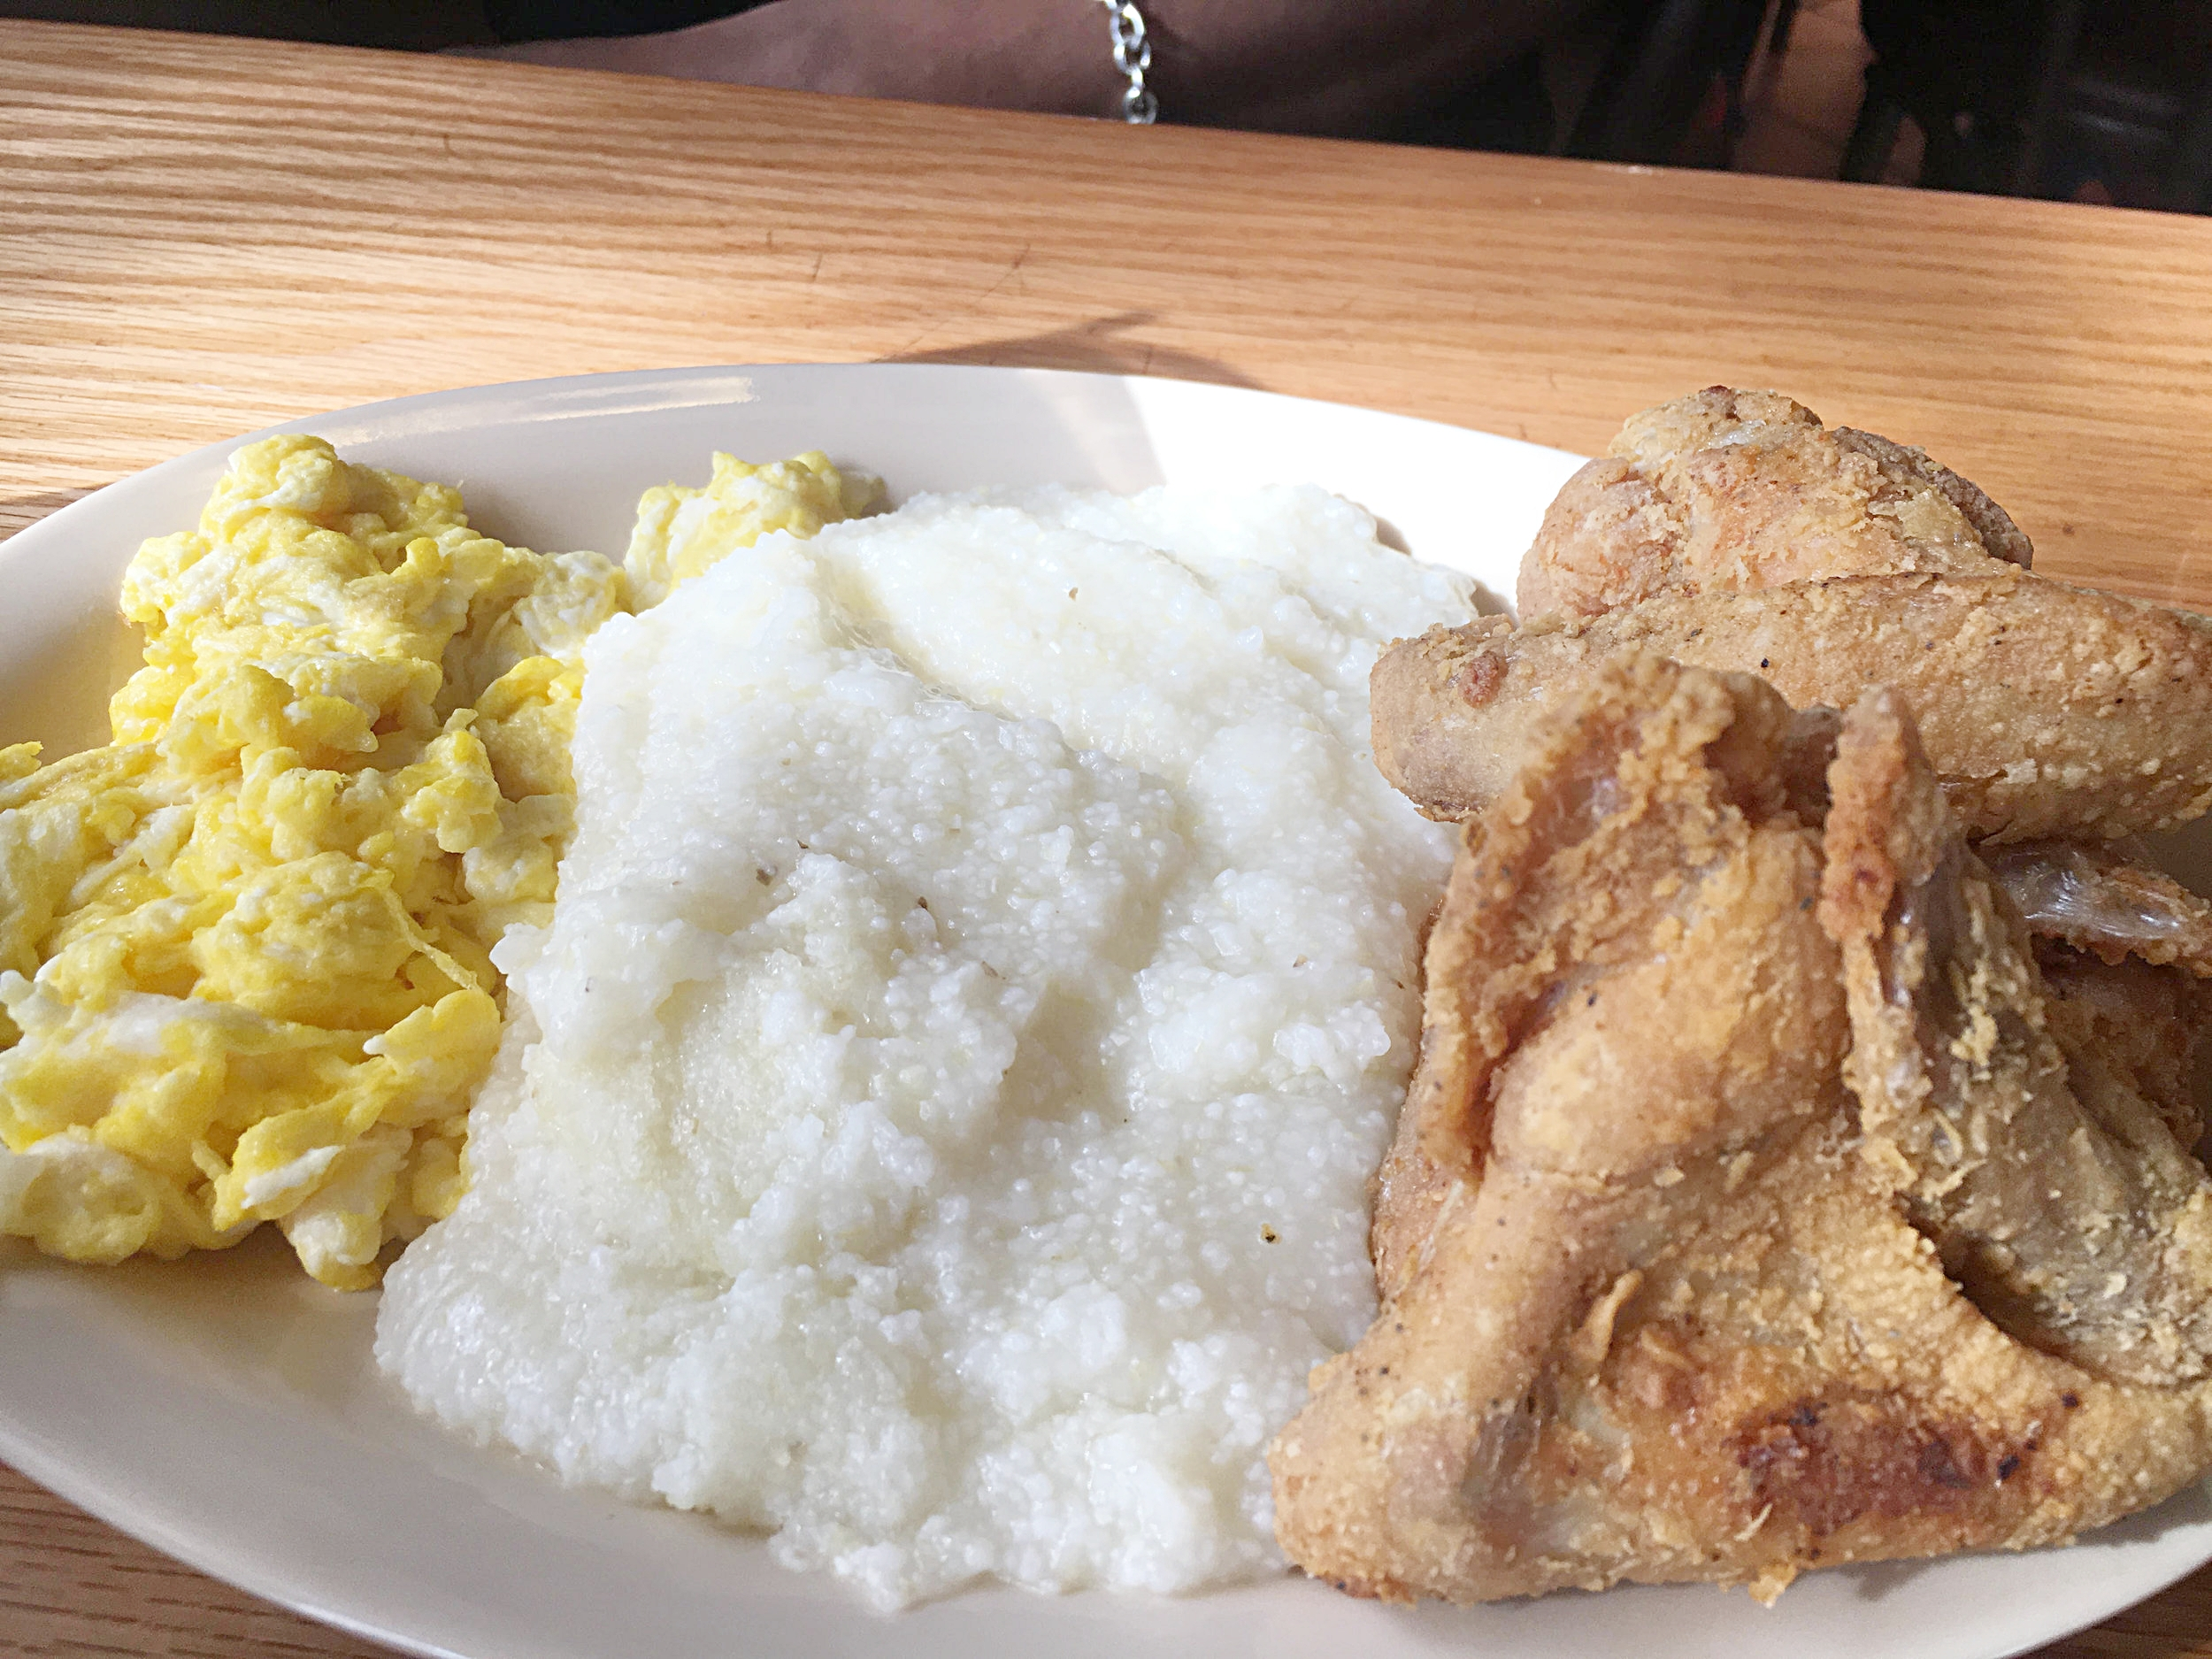 Eggs, Grits & Fried Chicken, only @Roscoes - Inglewood, CA